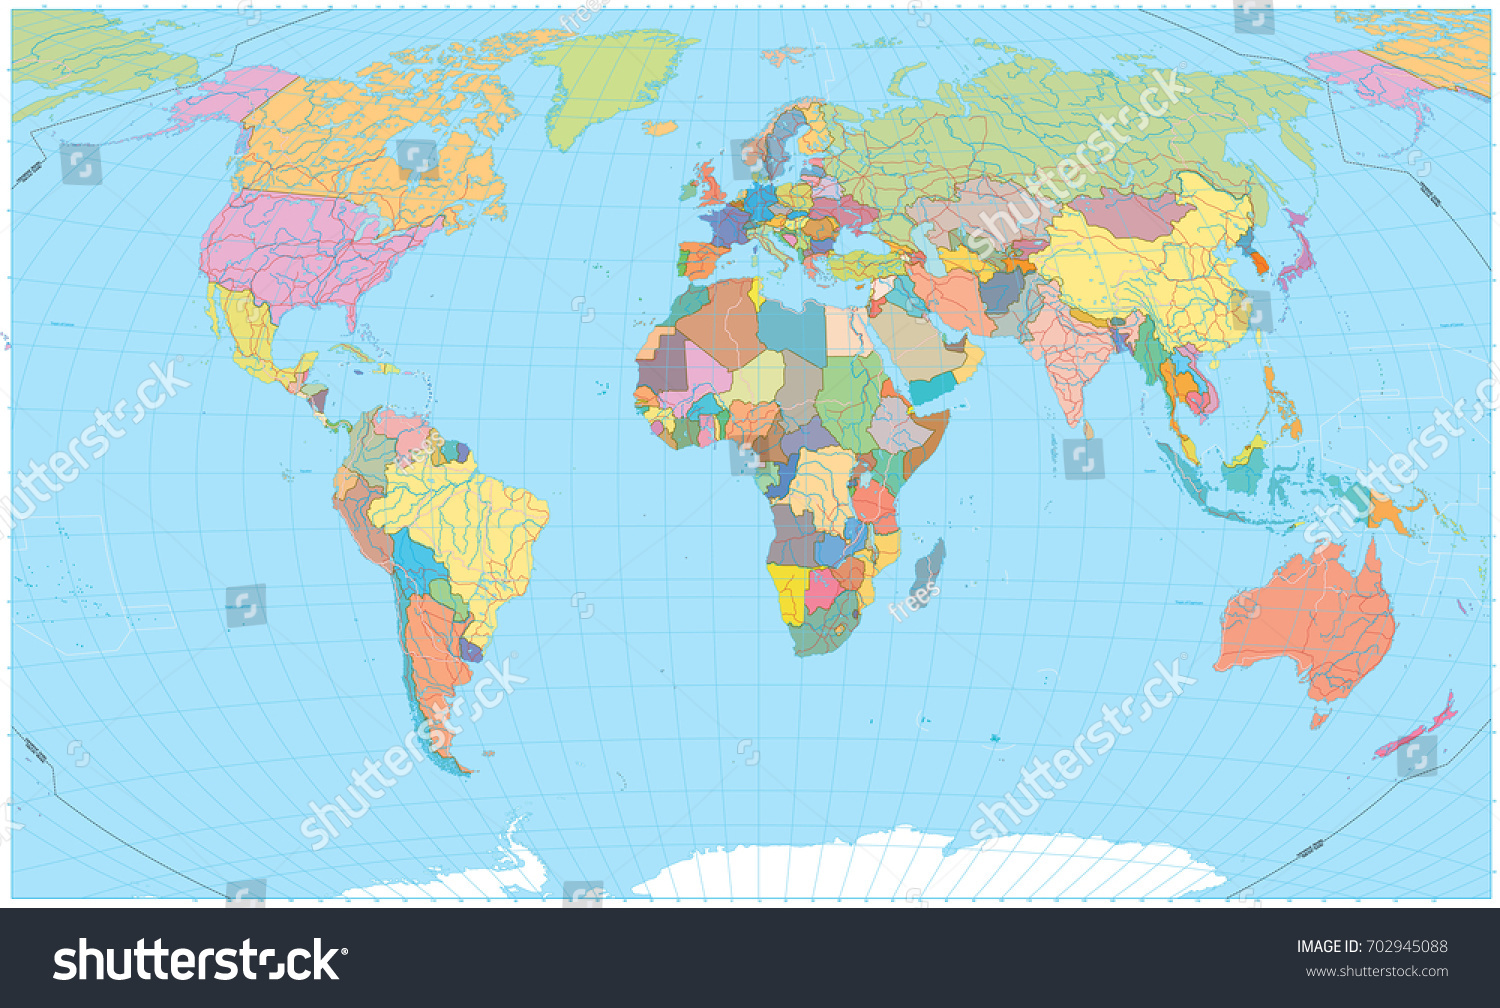 Colored World Map Borders Roads Rivers Stock Photo Photo Vector